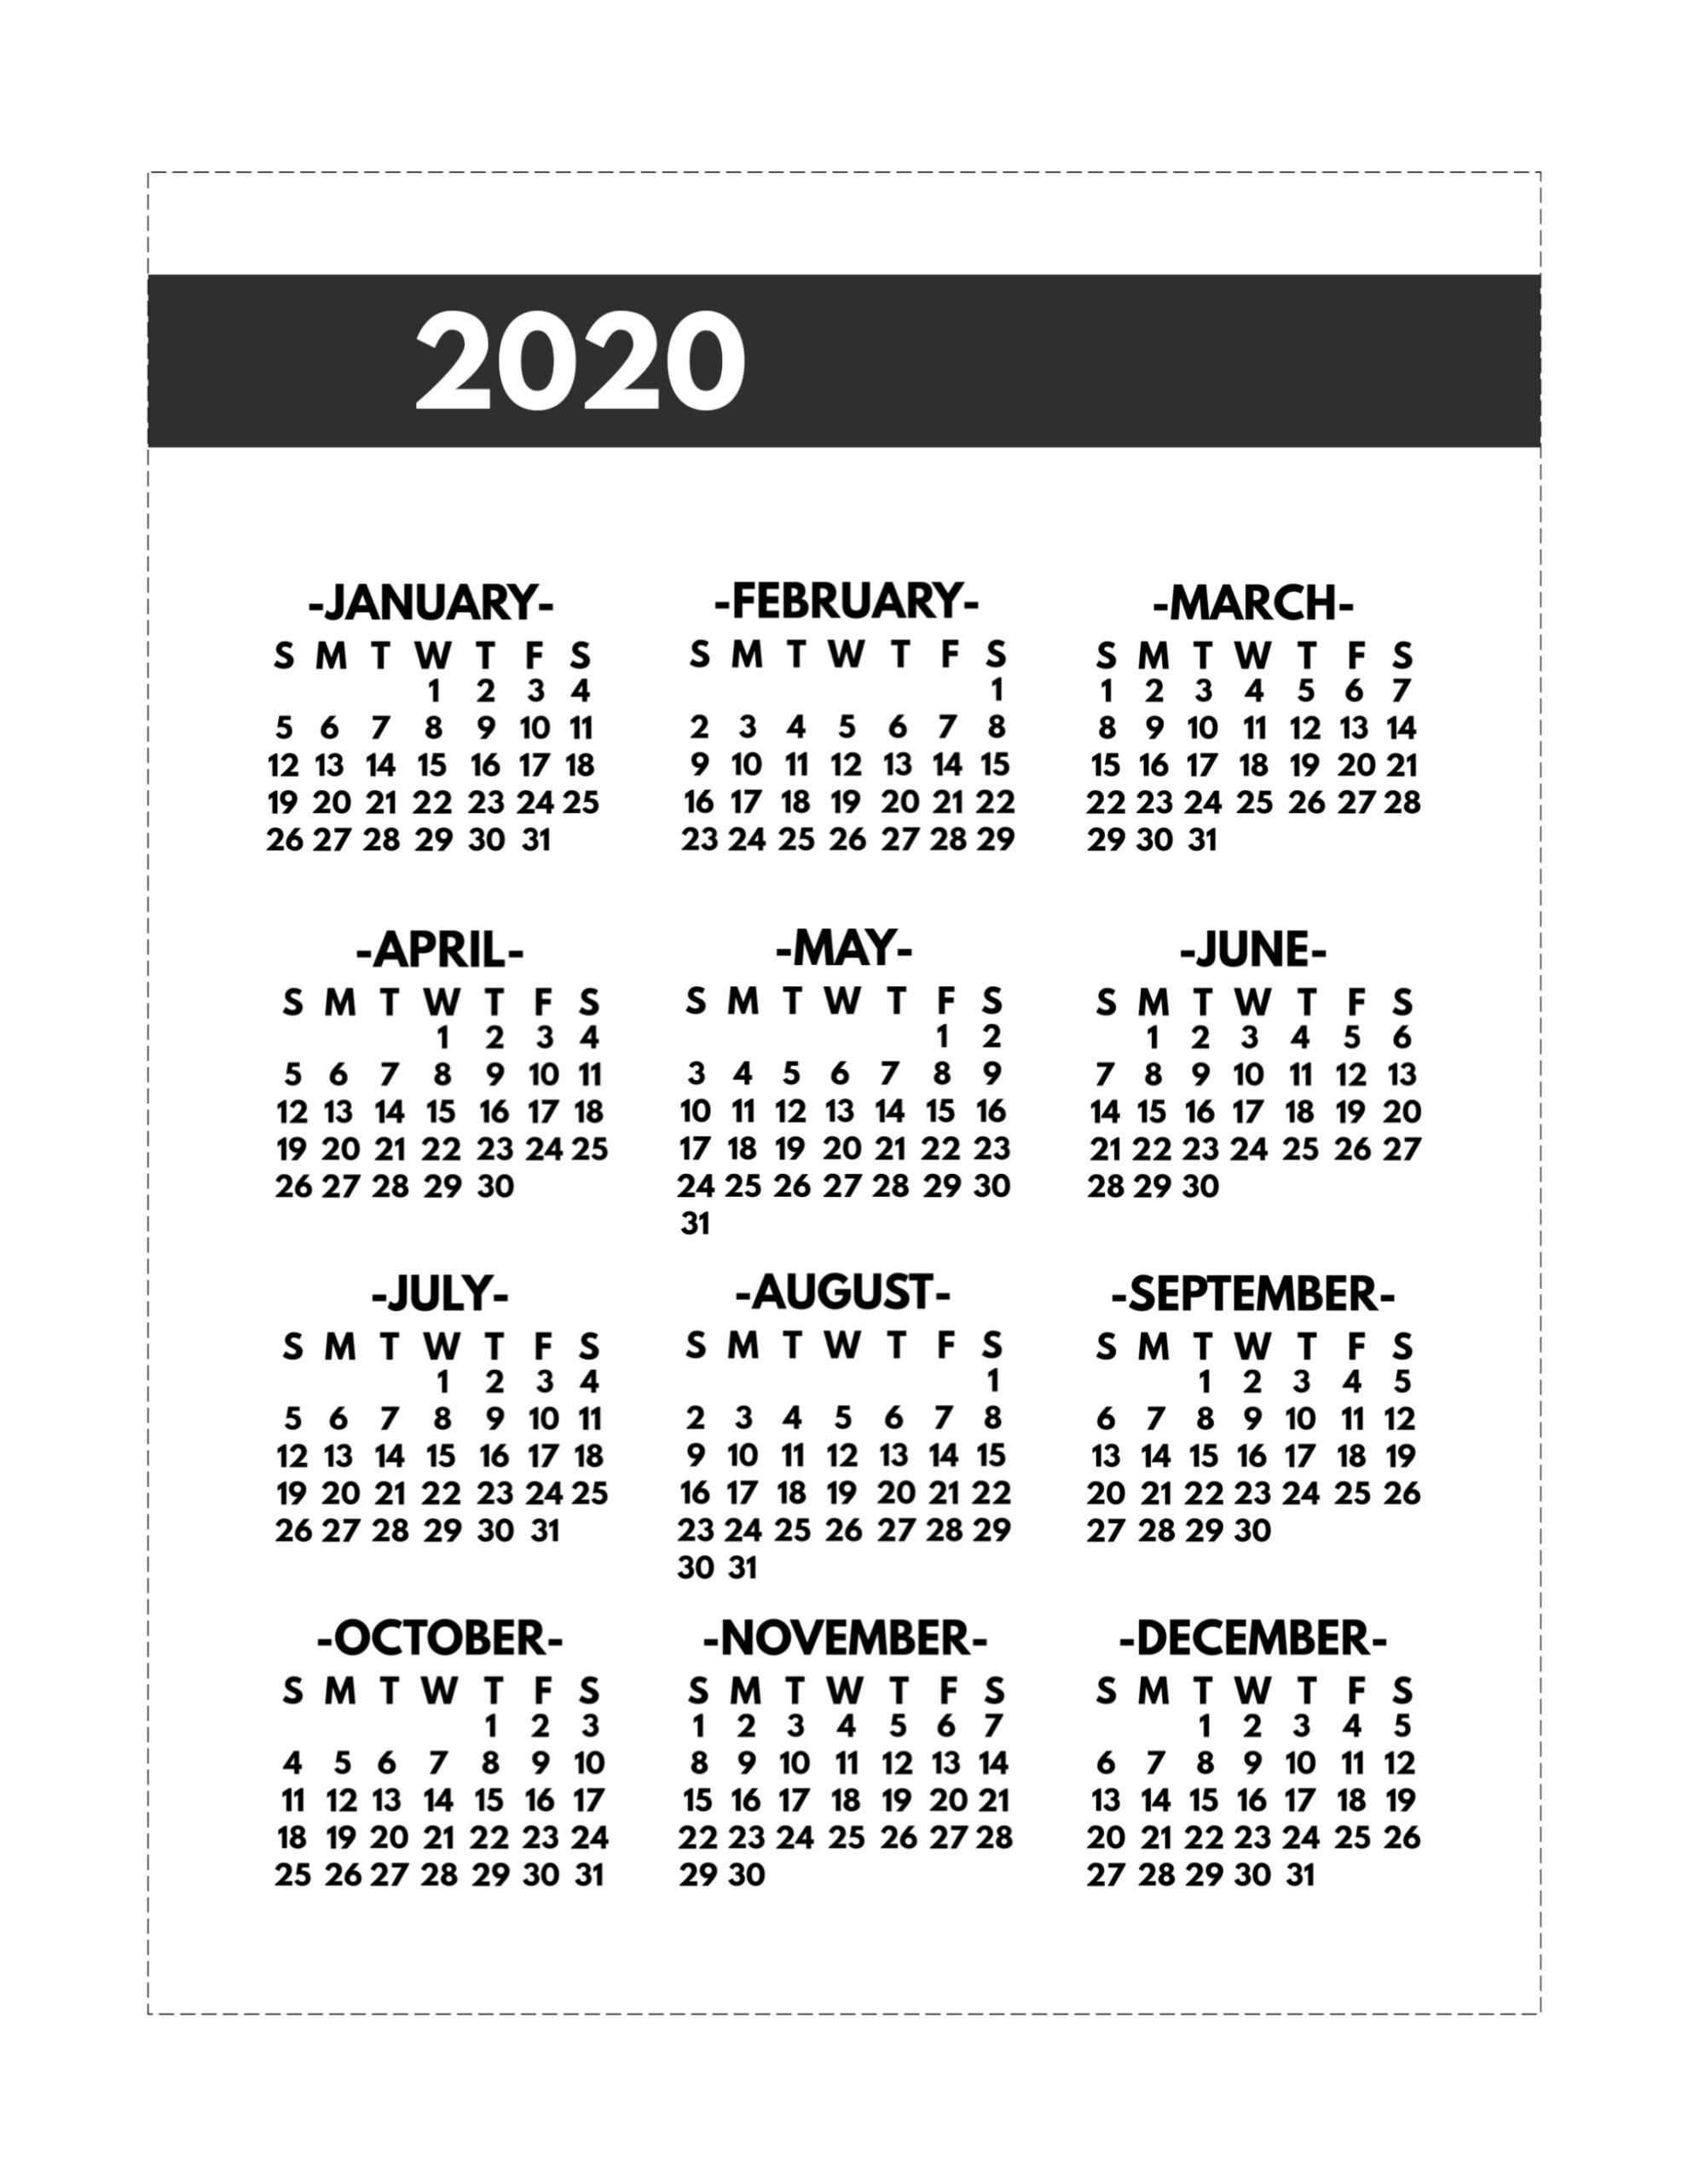 2020 Printable One Page Year At A Glance Calendar - Paper within Calendar At A Glance 2020